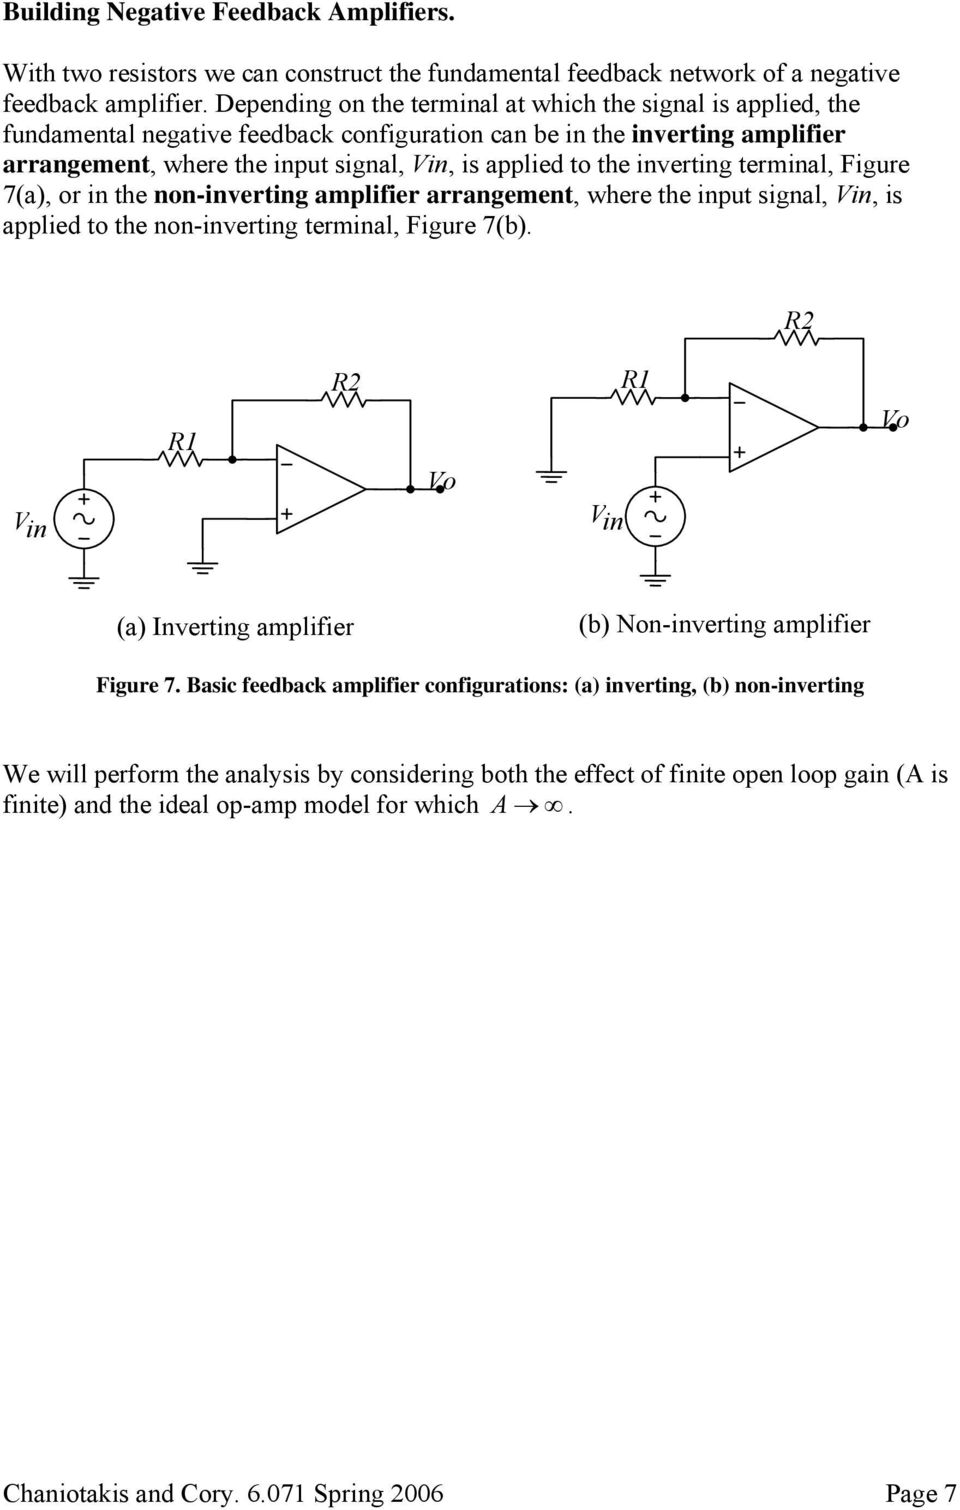 inverting terminal, Figure 7(a), or in the non-inverting amplifier arrangement, where the input signal, Vin, is applied to the non-inverting terminal, Figure 7(b).